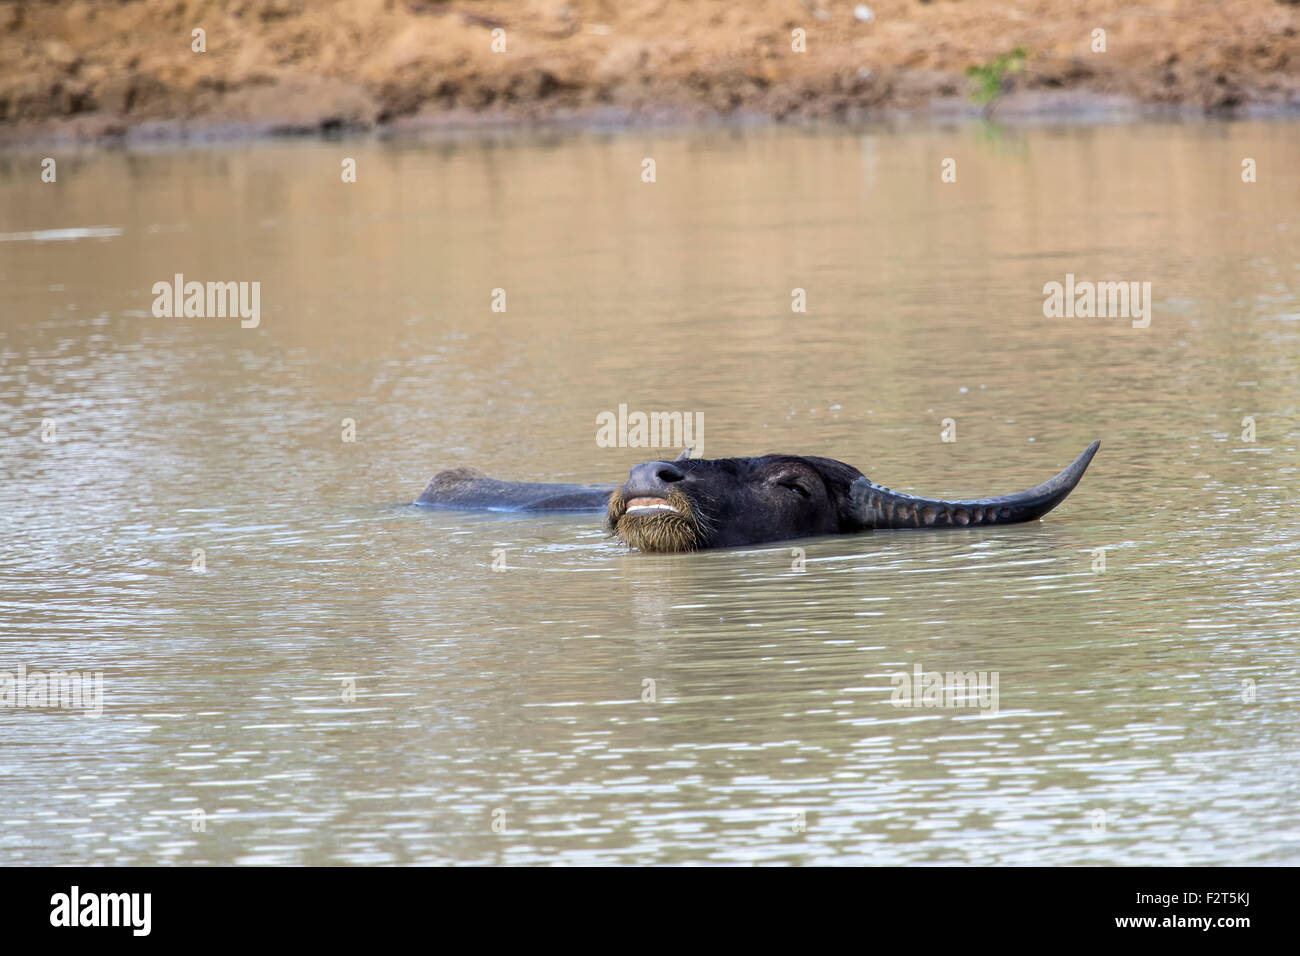 Wallowing water buffalo in a waterhole - Stock Image